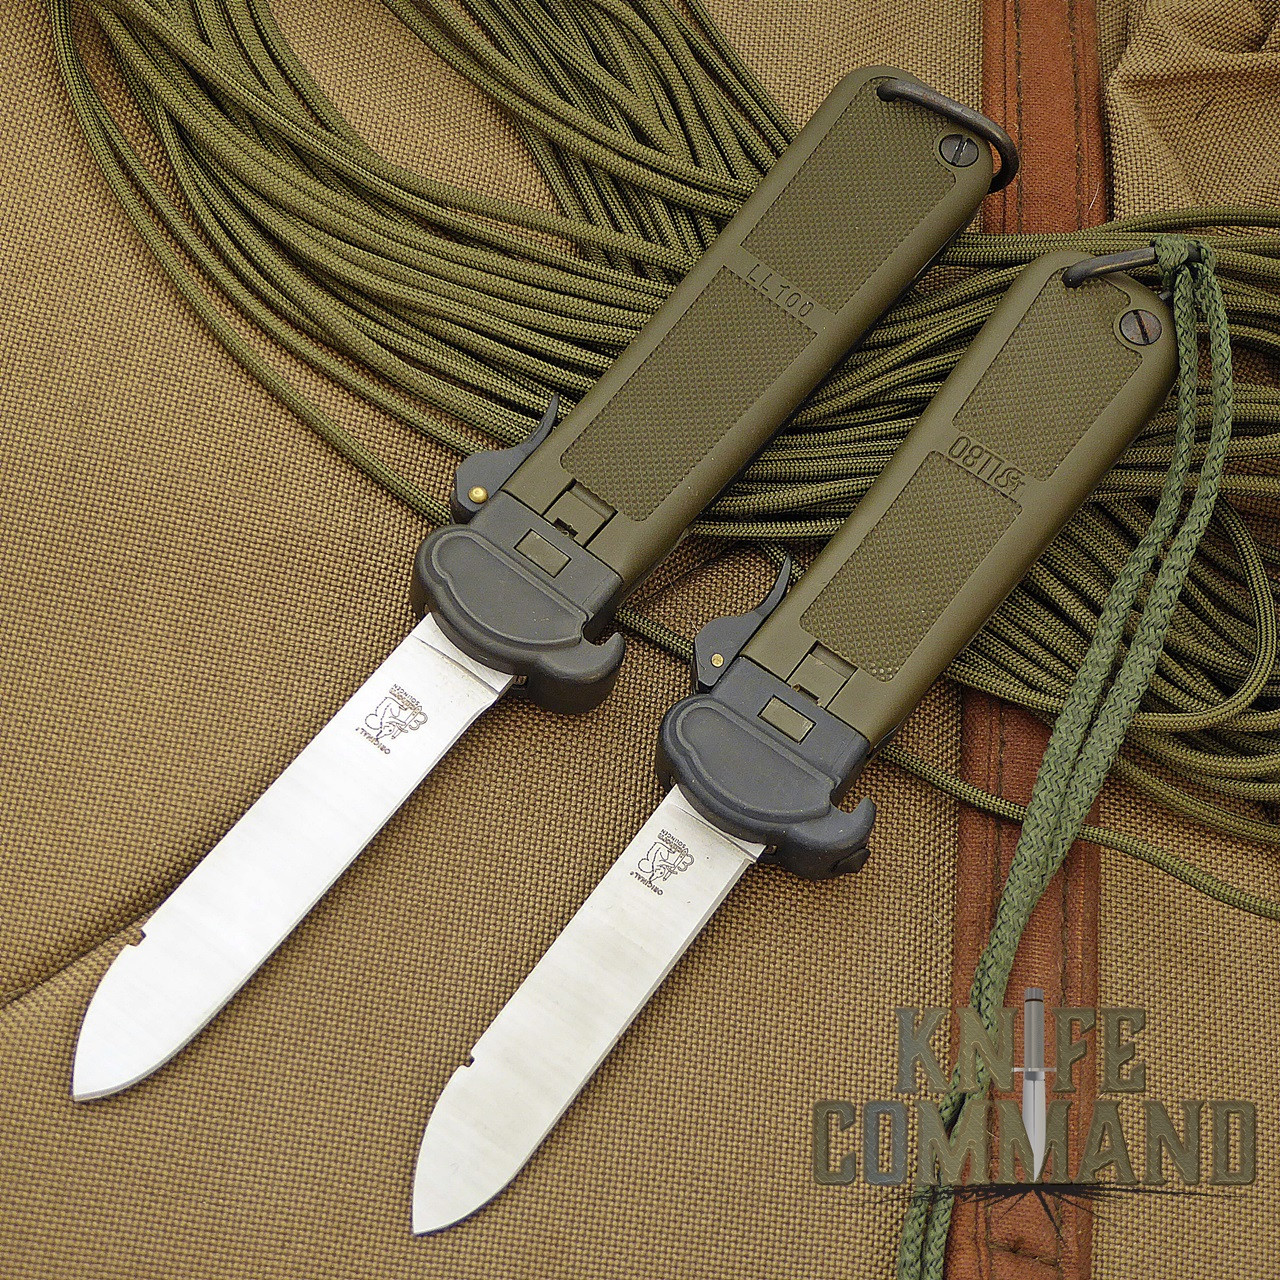 Eickhorn Solingen LL100 Paratrooper Knife.  The larger LL100 pictured here with the smaller LL80.